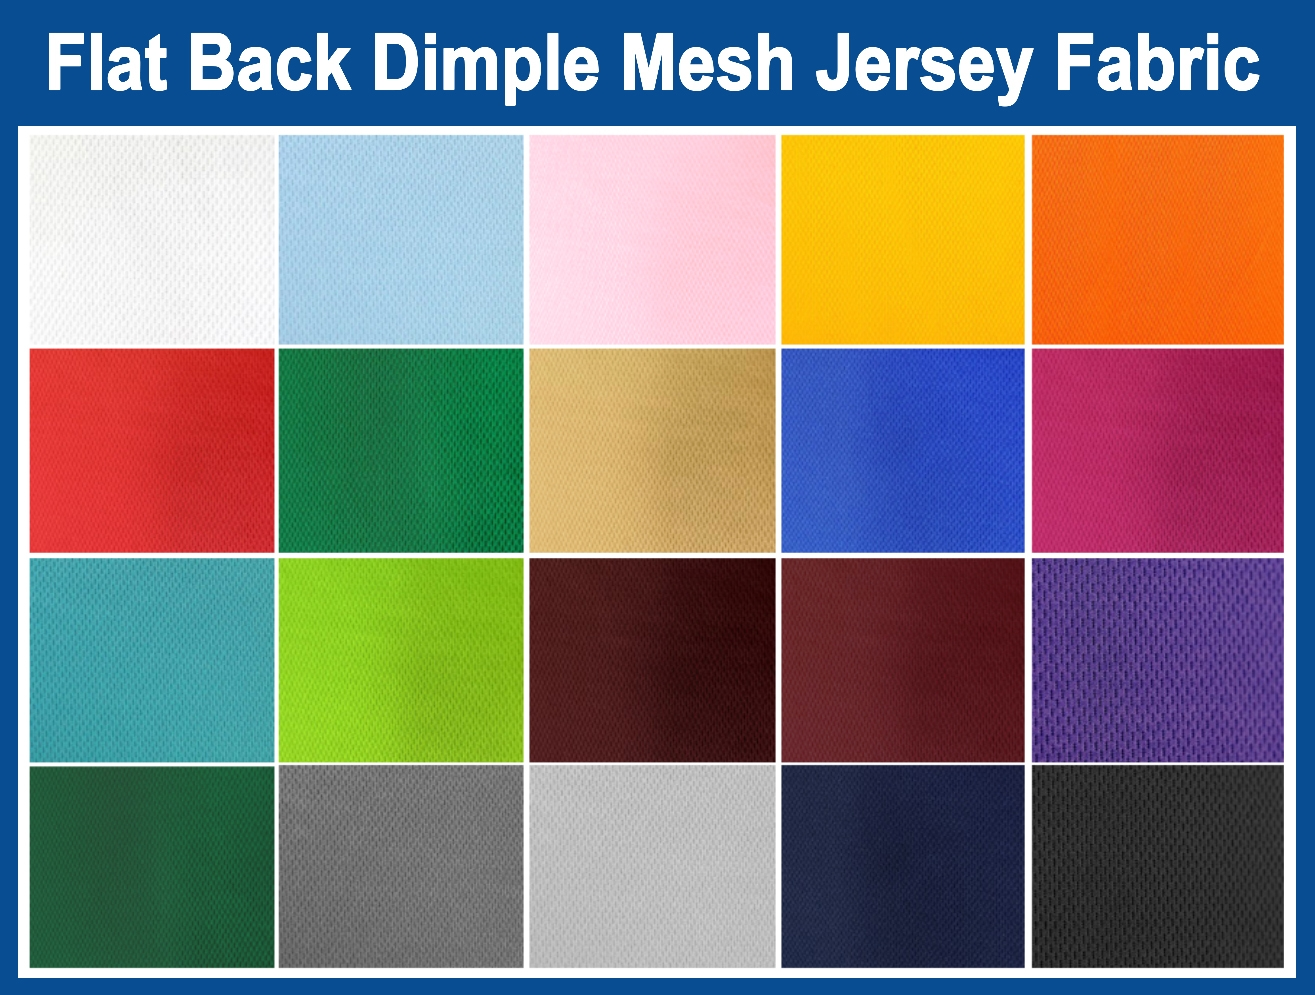 Flat Back Dimple Mesh Jersey Fabric